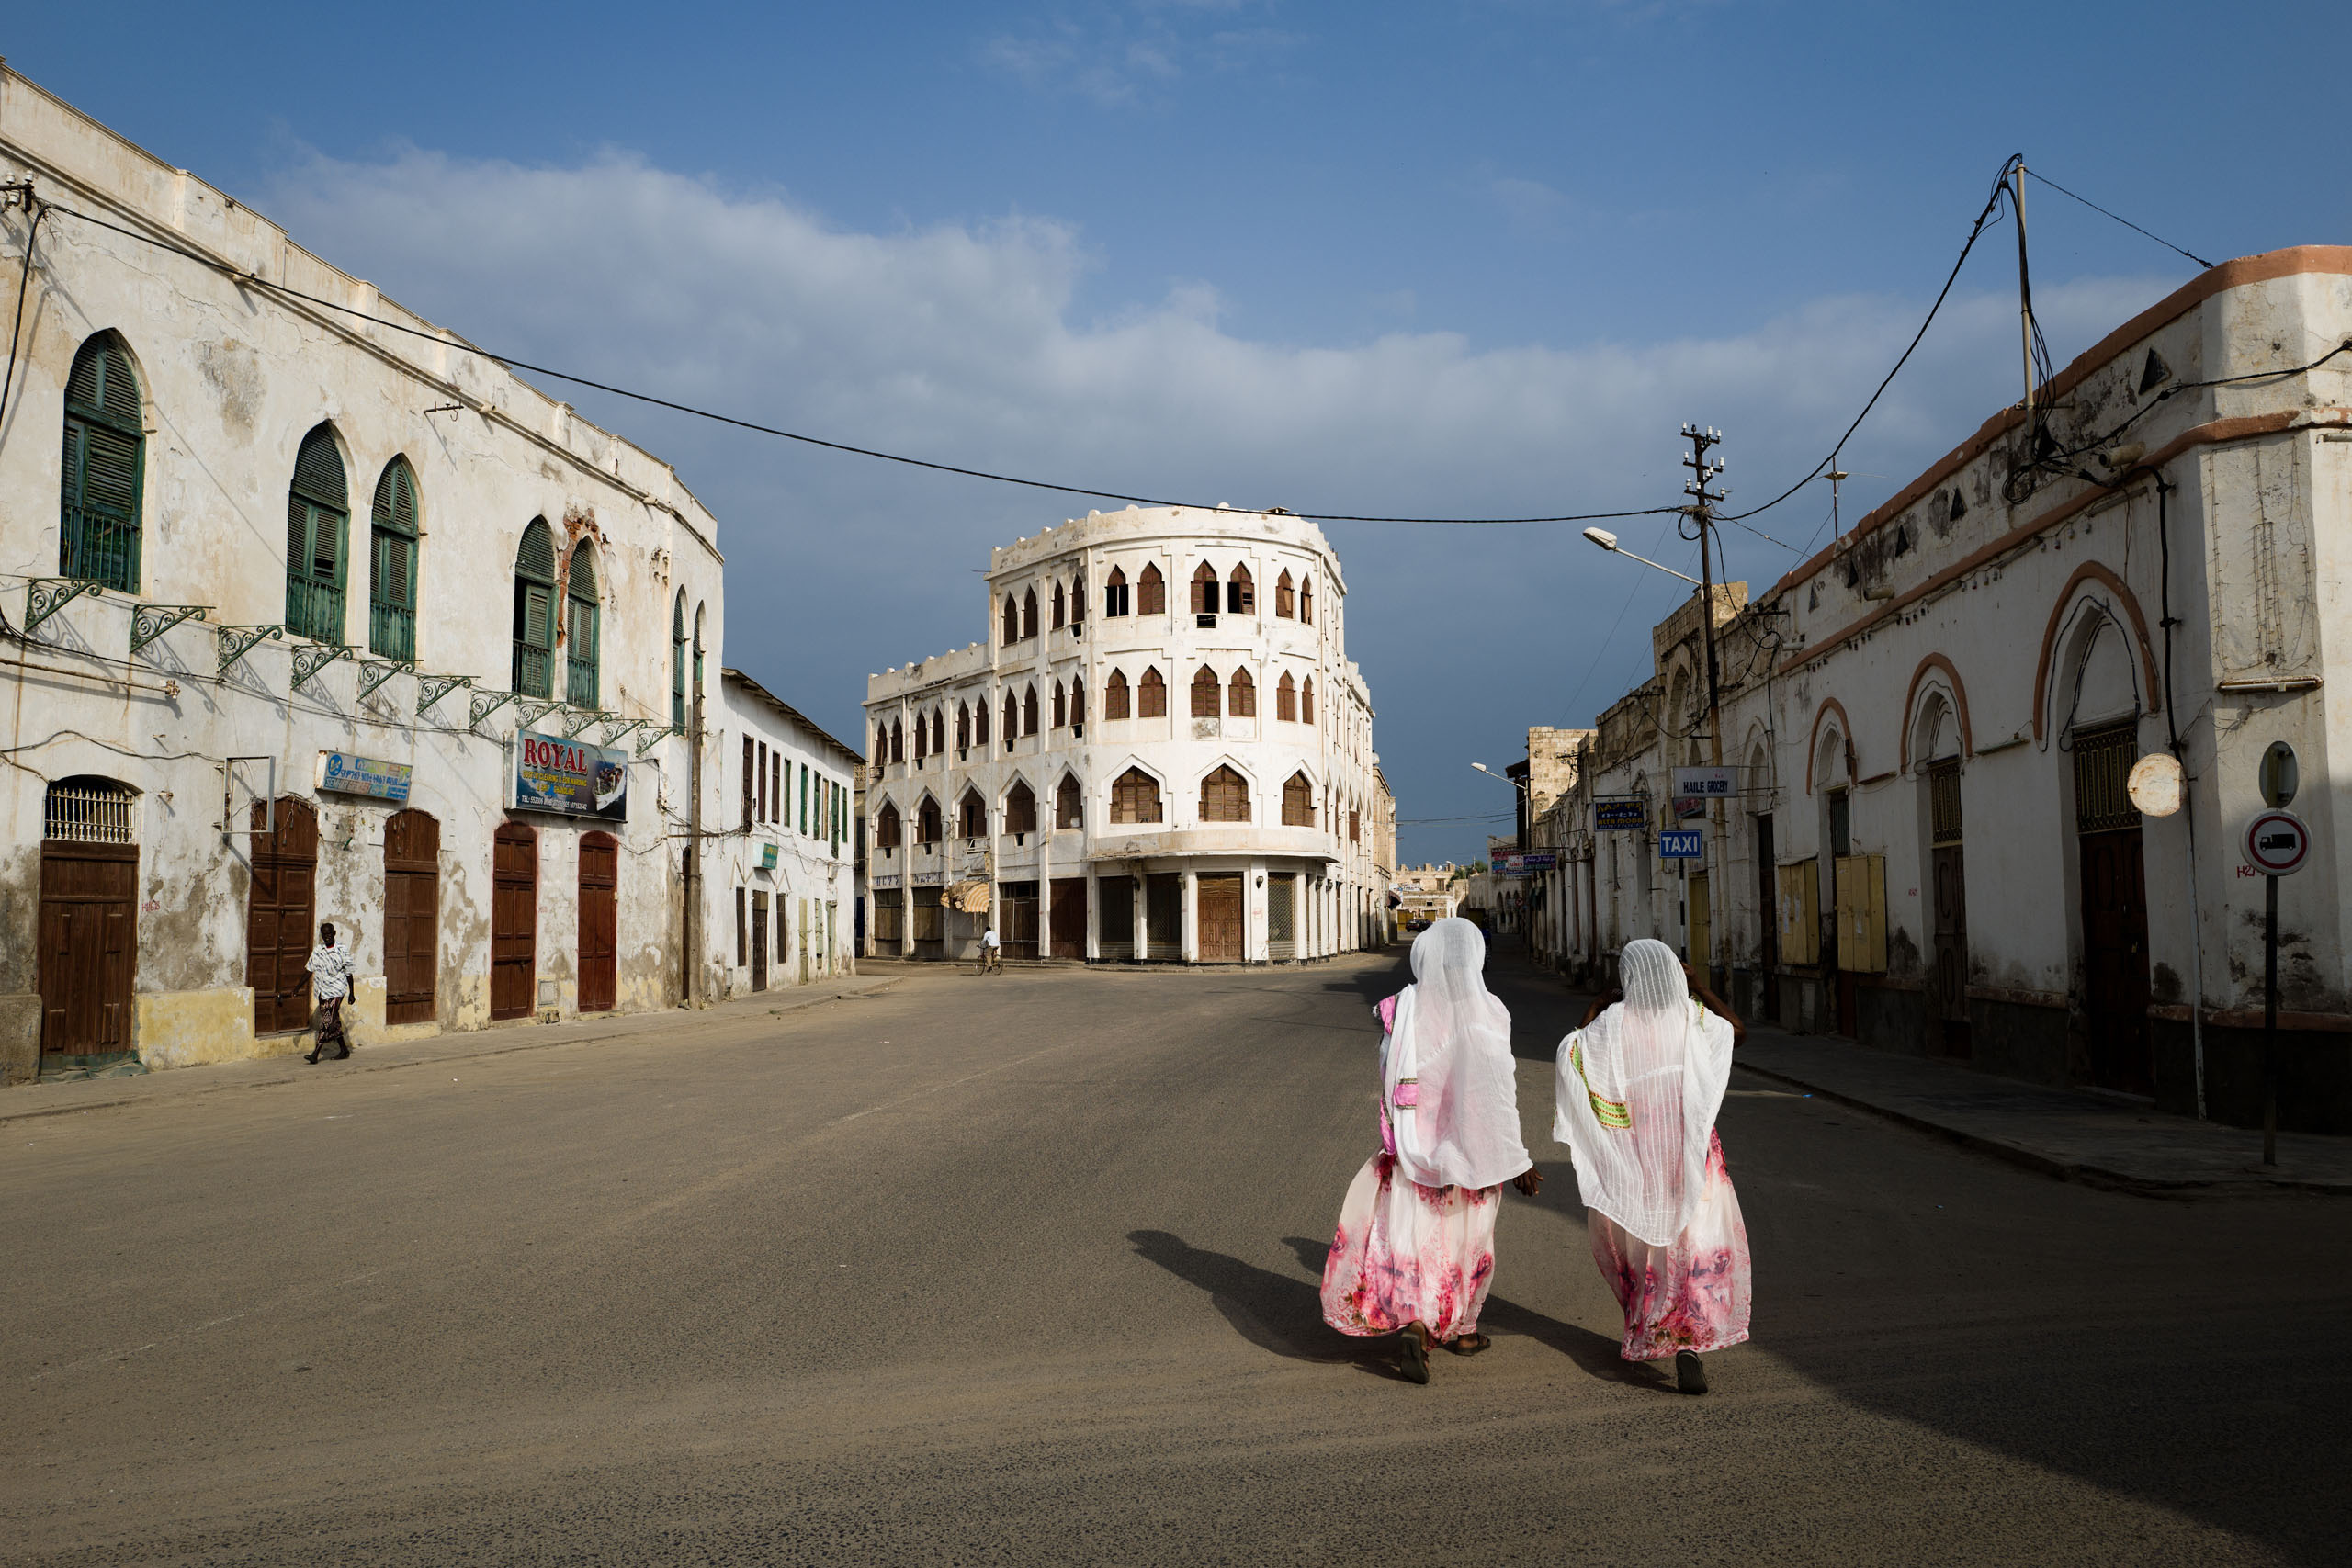 The Hotel Torino, in the old section of the city of Massawa.